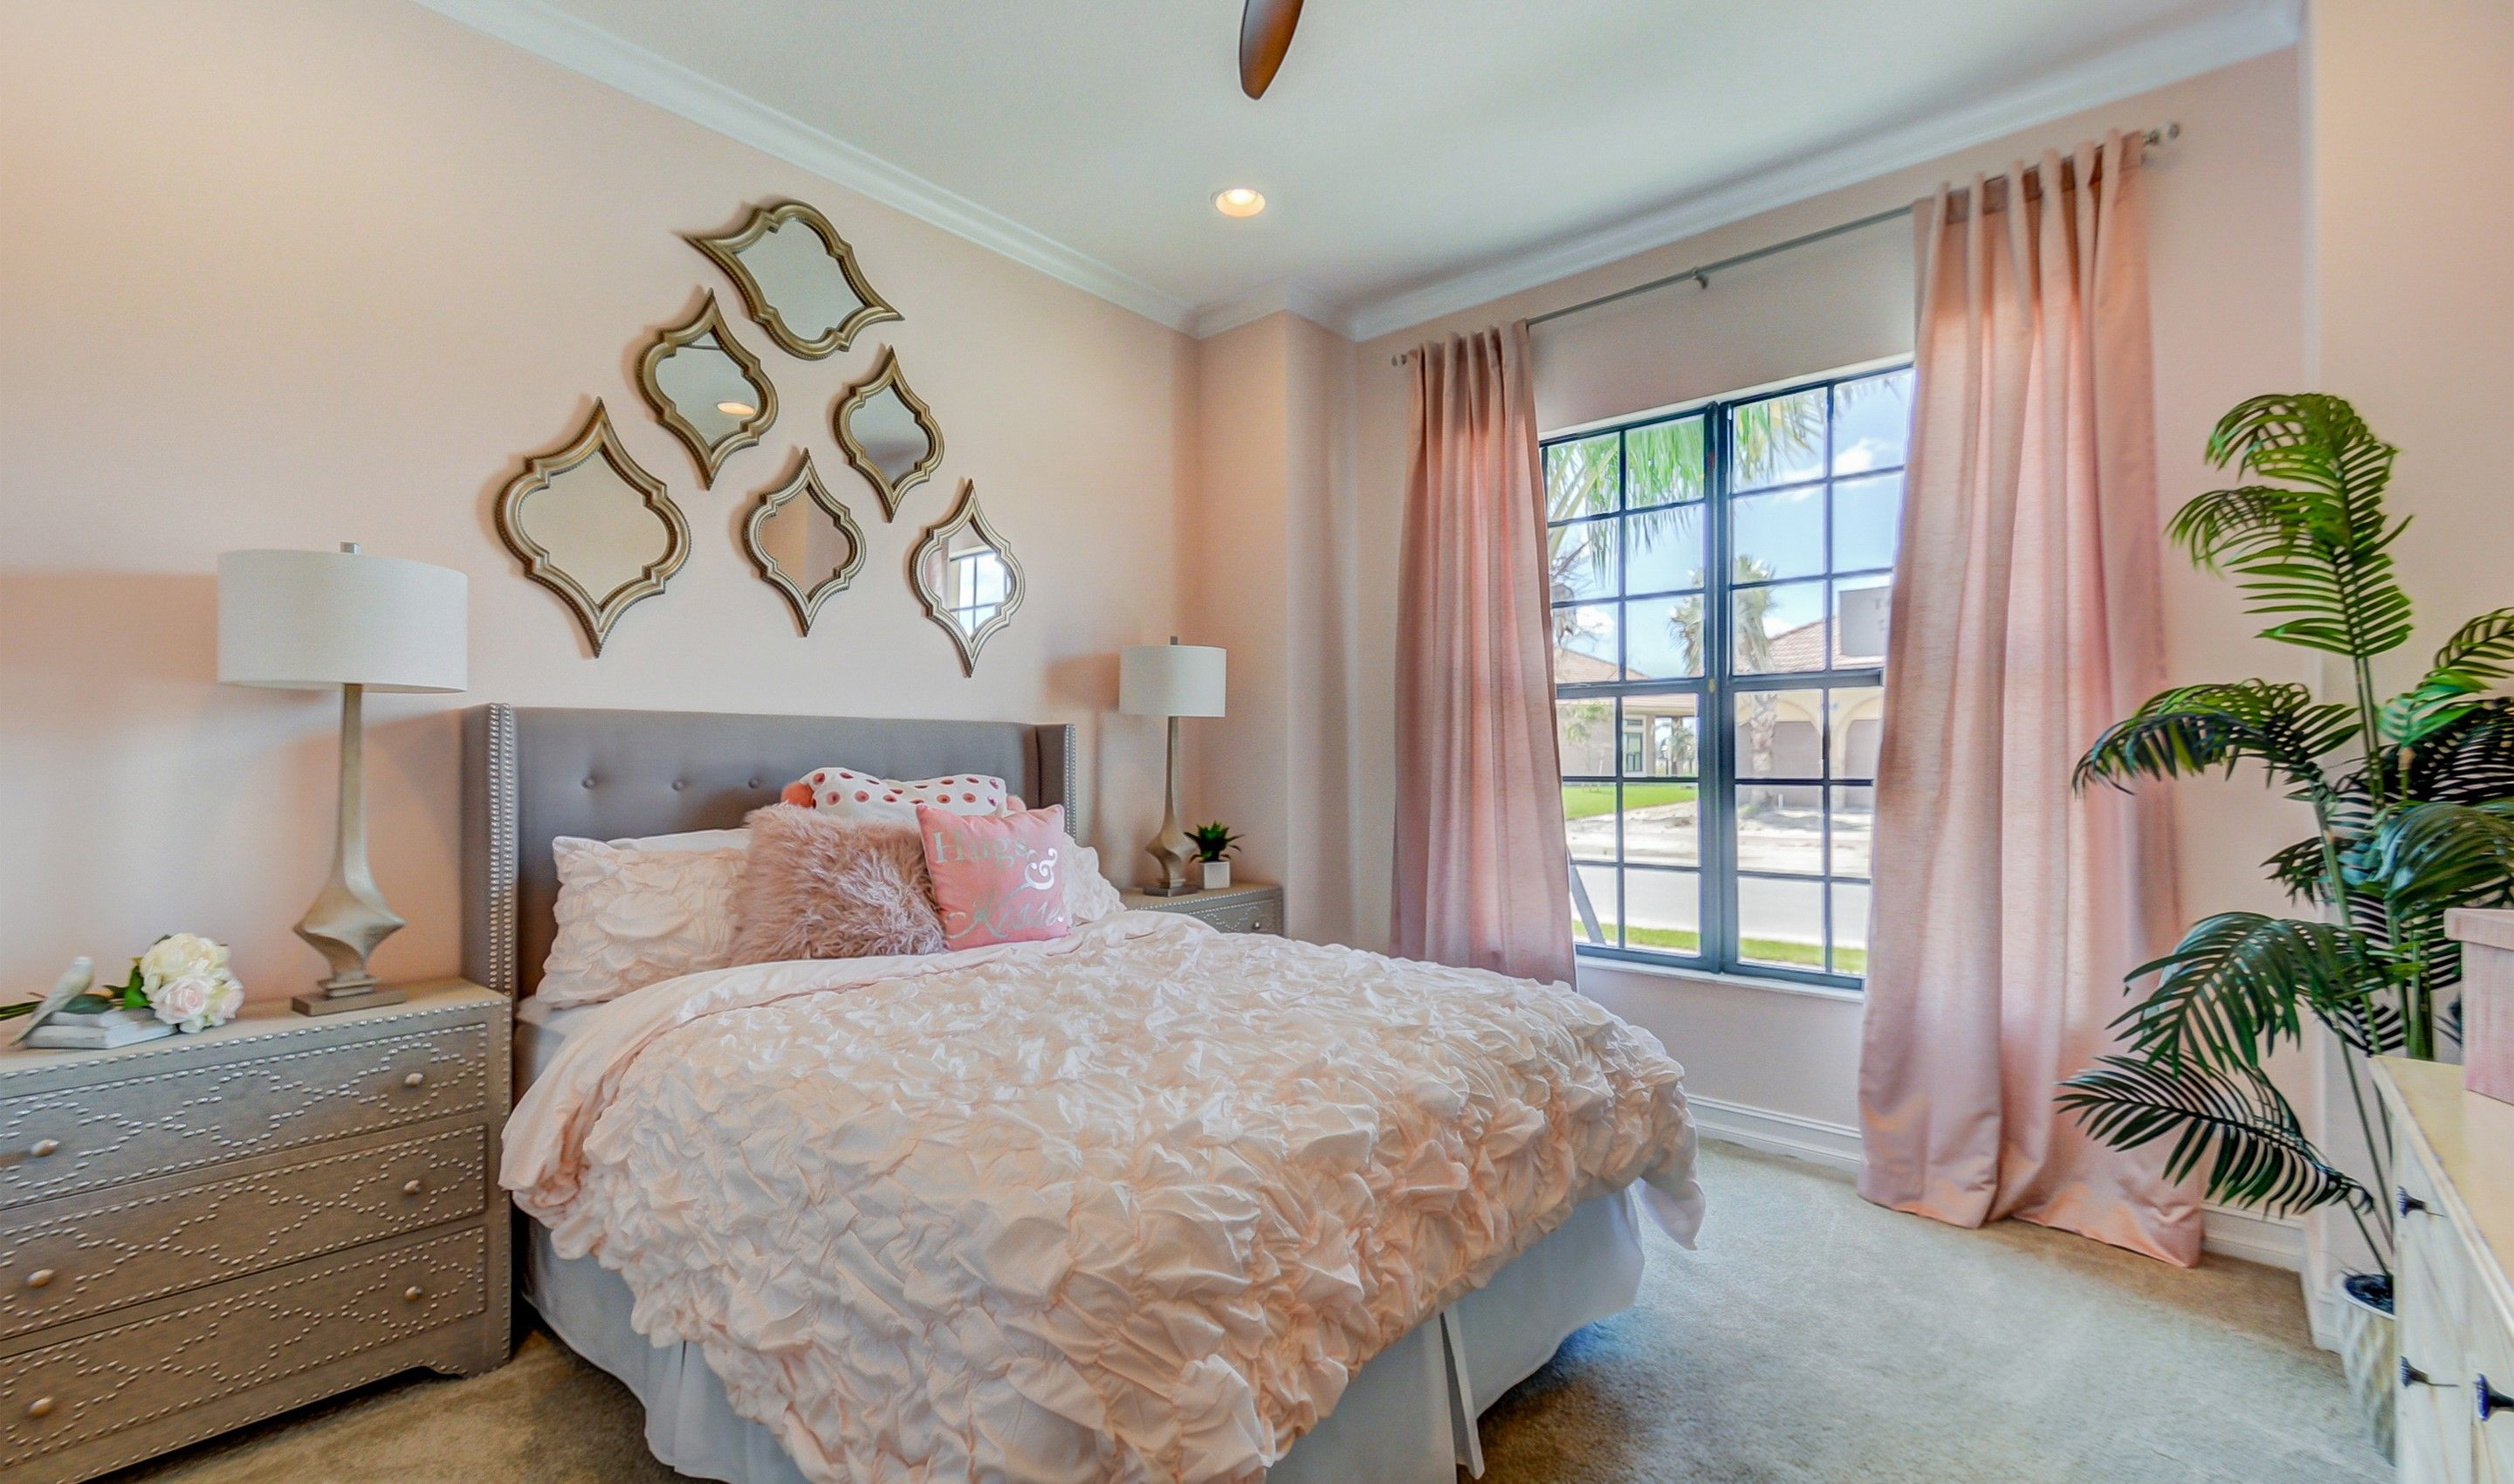 Bedroom featured in the Vera By K. Hovnanian's® Four Seasons in Broward County-Ft. Lauderdale, FL